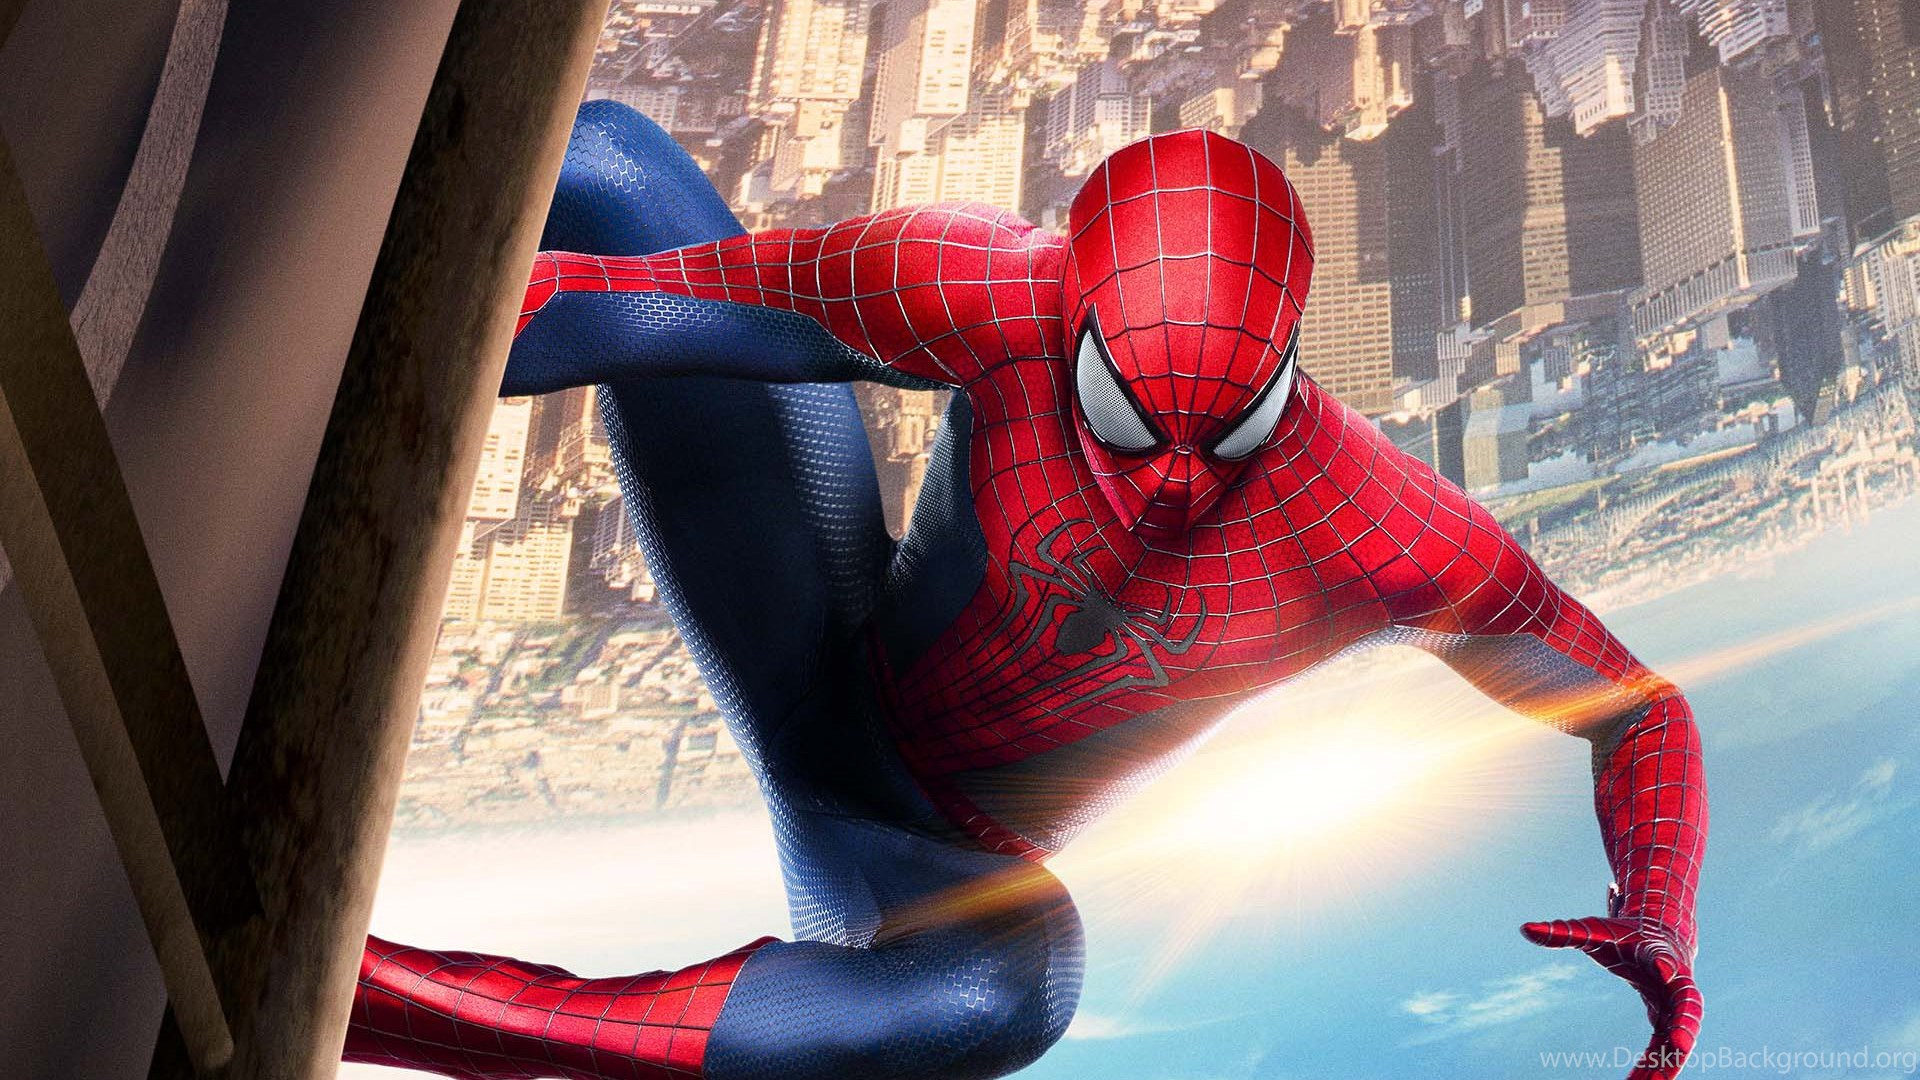 The Amazing Spider Man 2 Hd Wallpapers Desktop Background